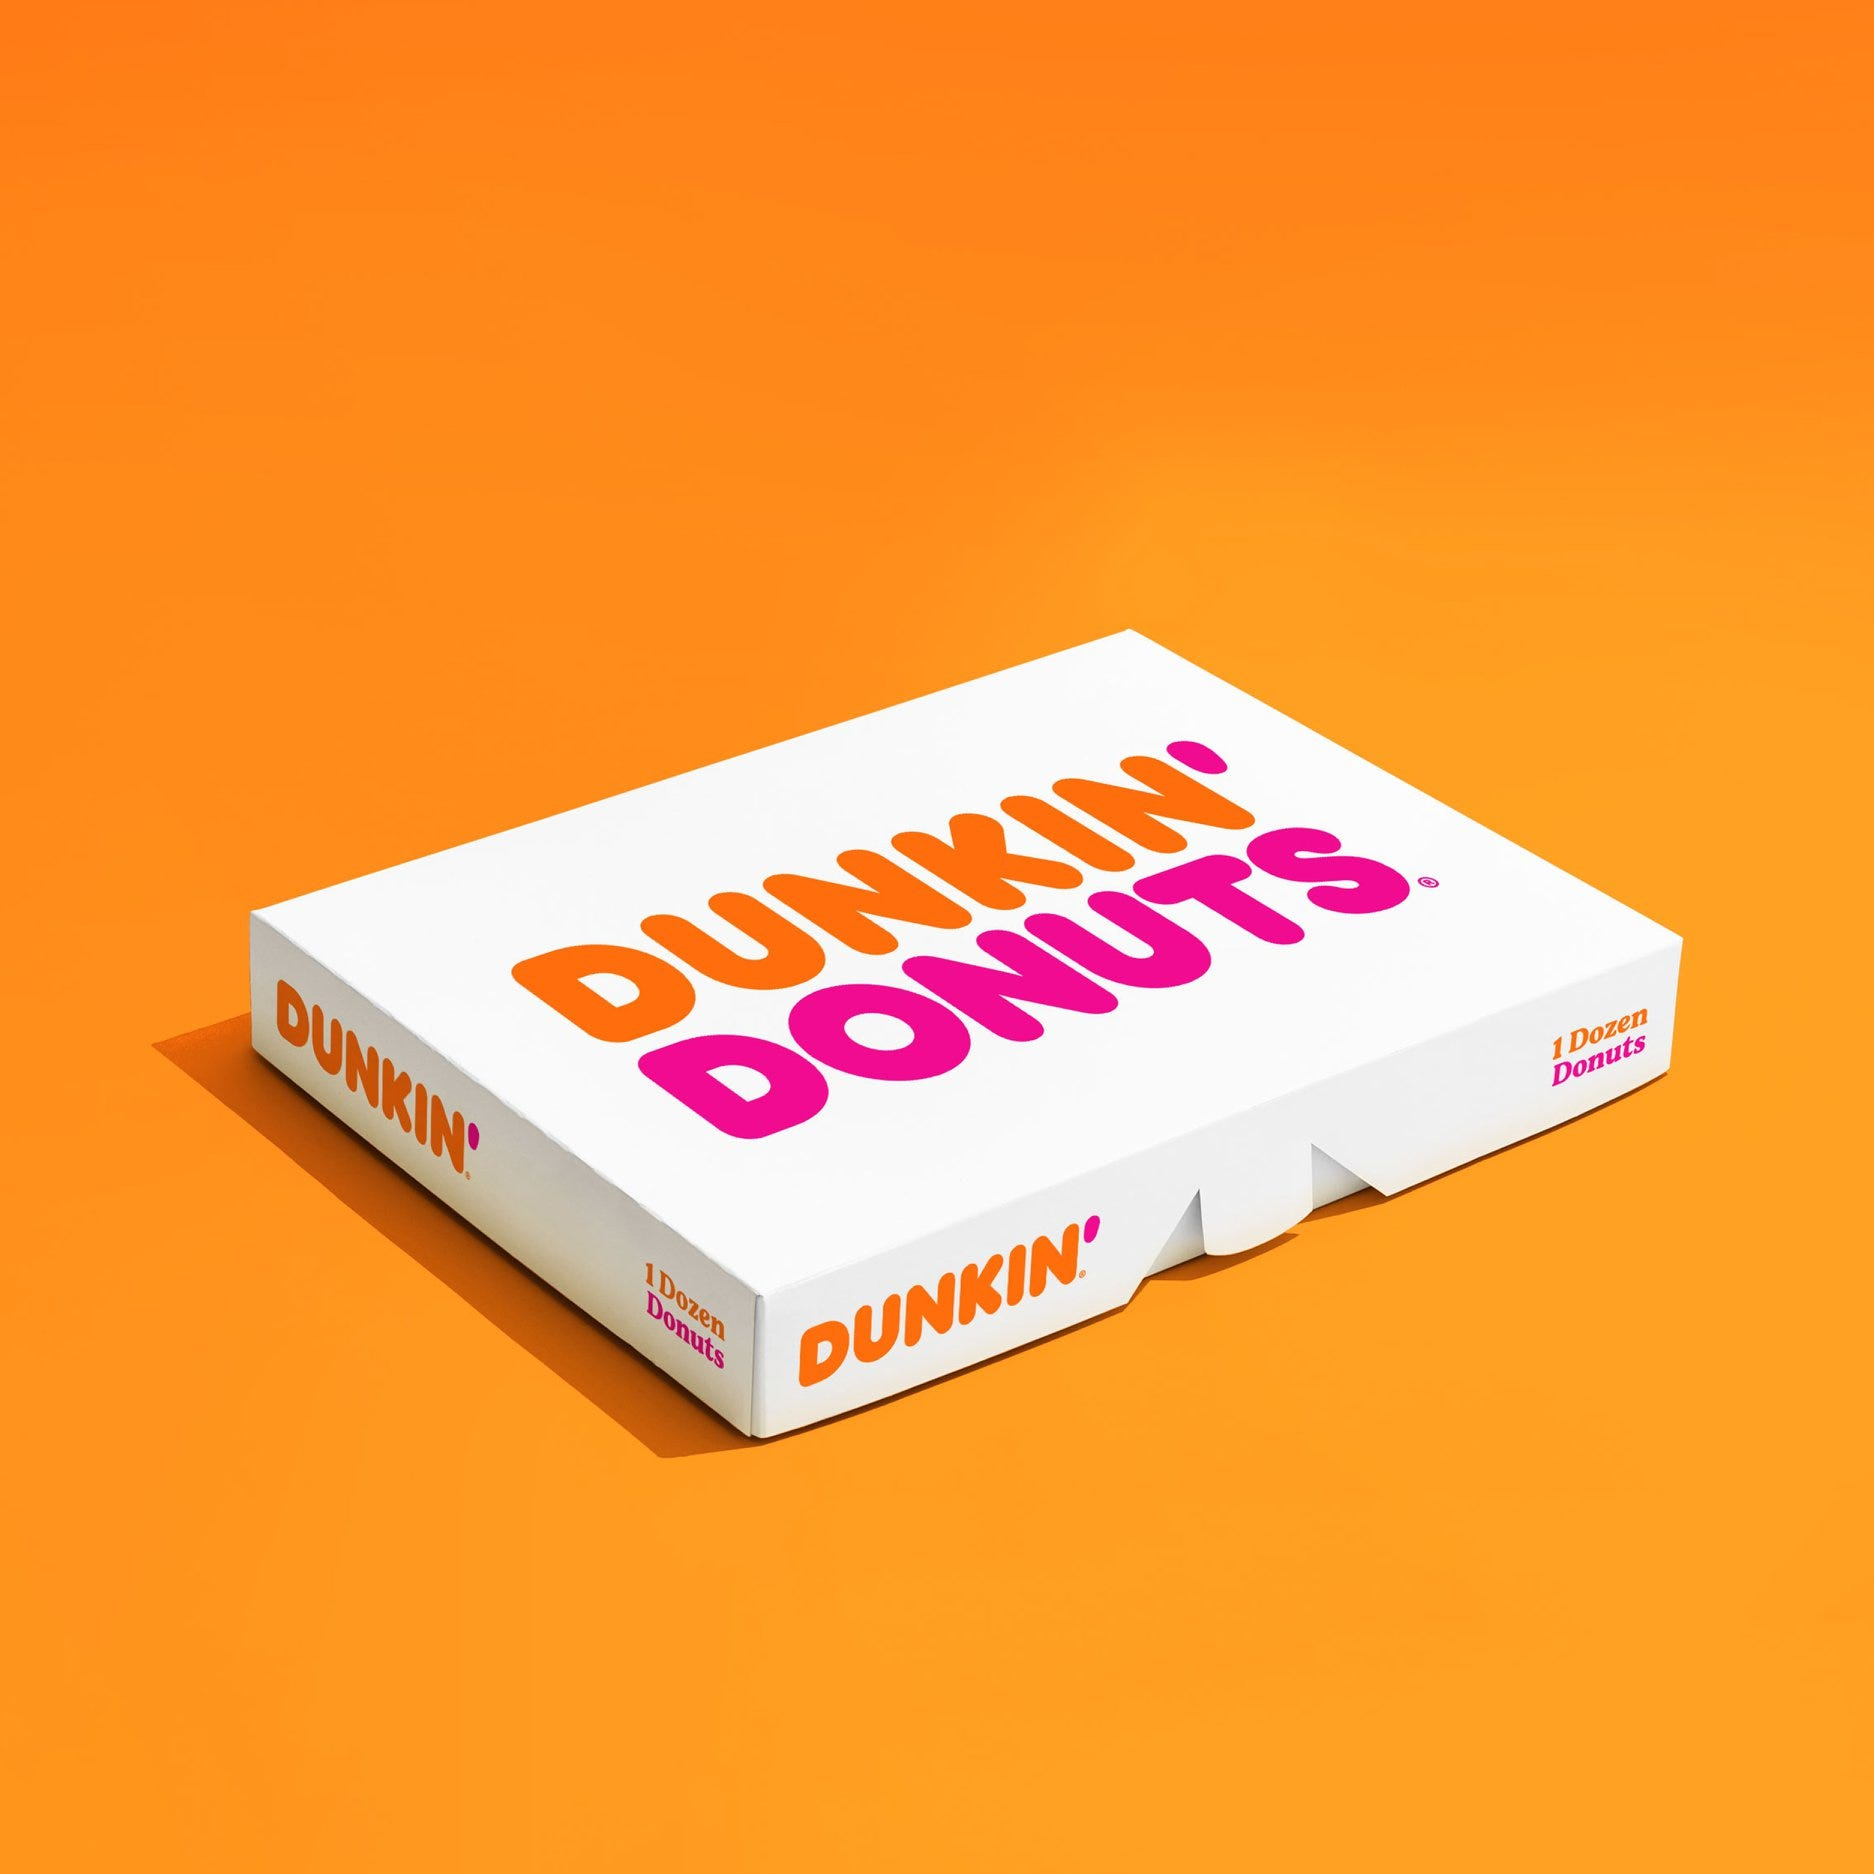 Open and Shut: Dunkin' Donuts is banking on shared space in Camarillo